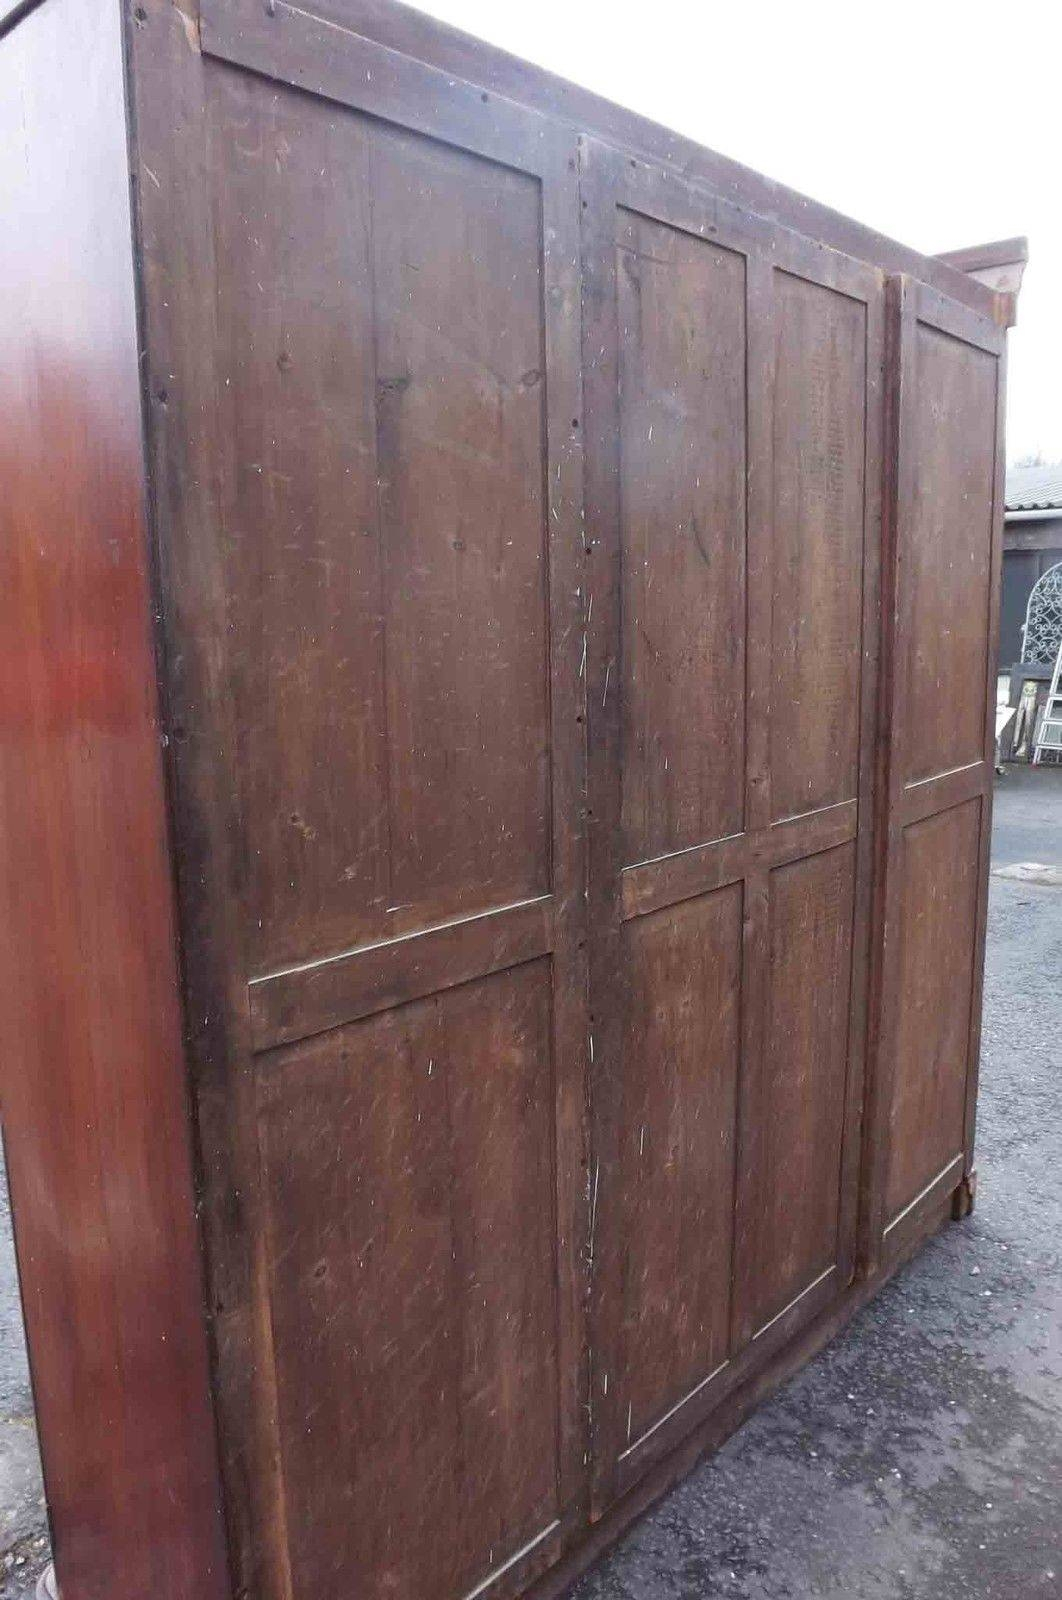 Victorian Mahogany Breakfront Wardrobe For Sale | Antiques within Victorian Mahogany Breakfront Wardrobe (Image 20 of 30)